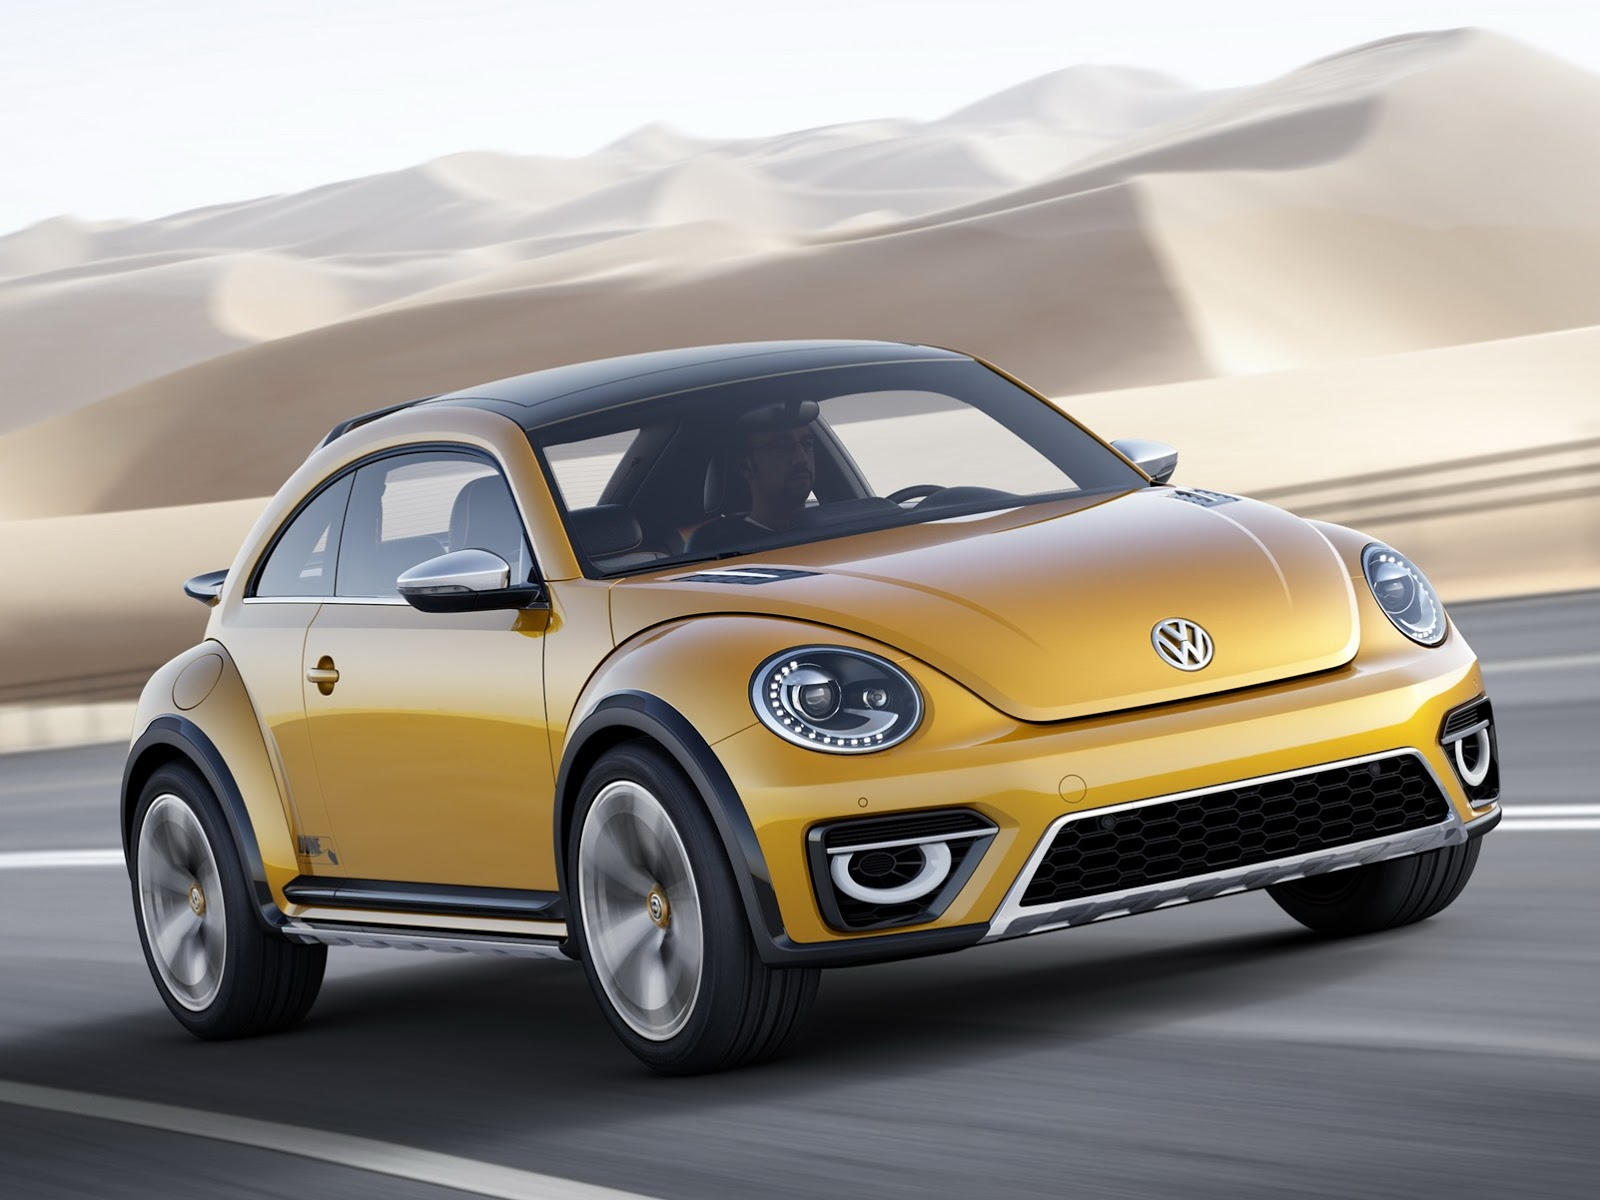 2019 Volkswagen Beetle Dune Concept photo - 3